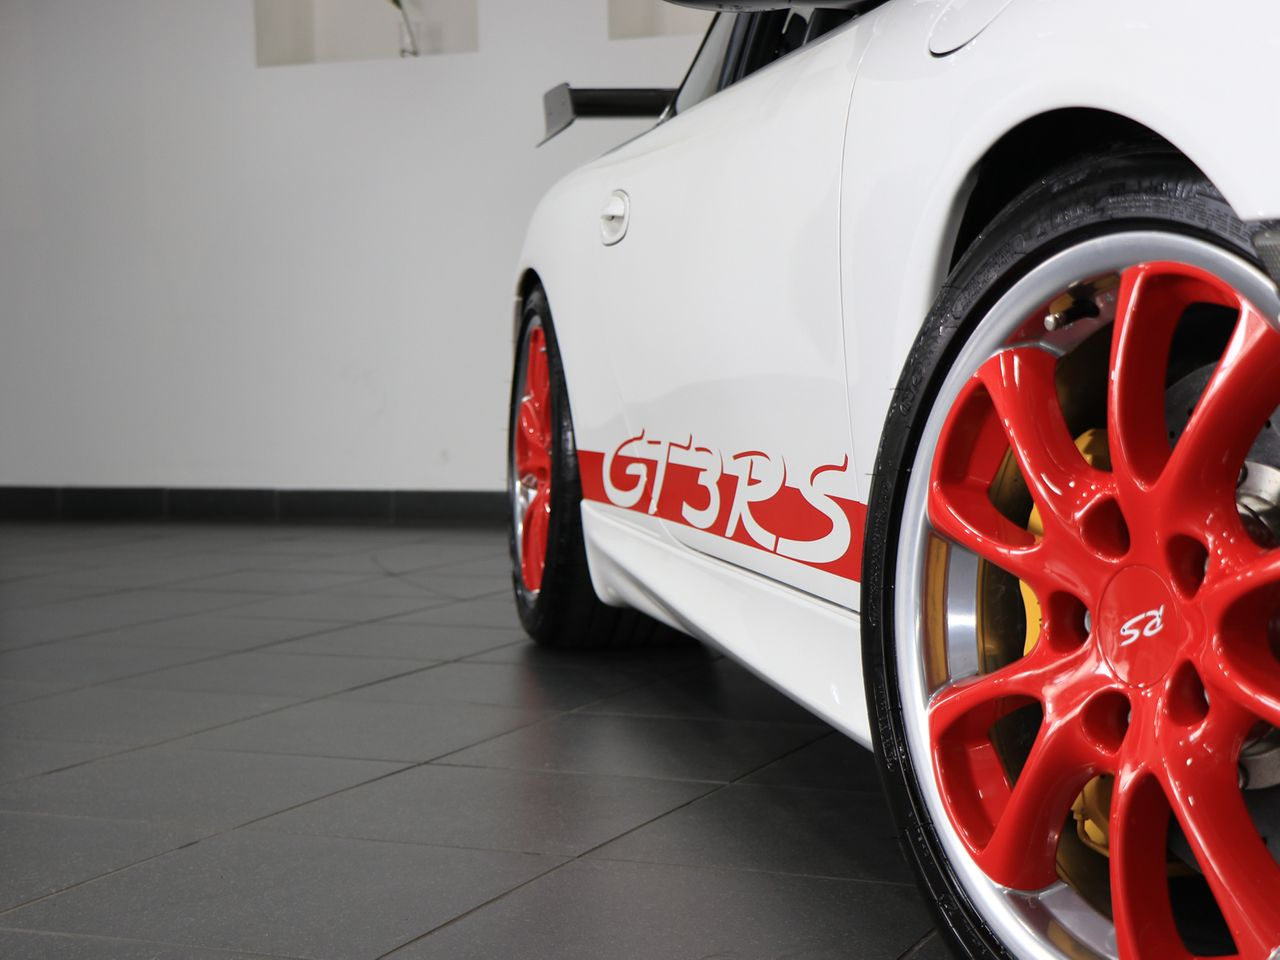 911 (996) GT3 RS image 28